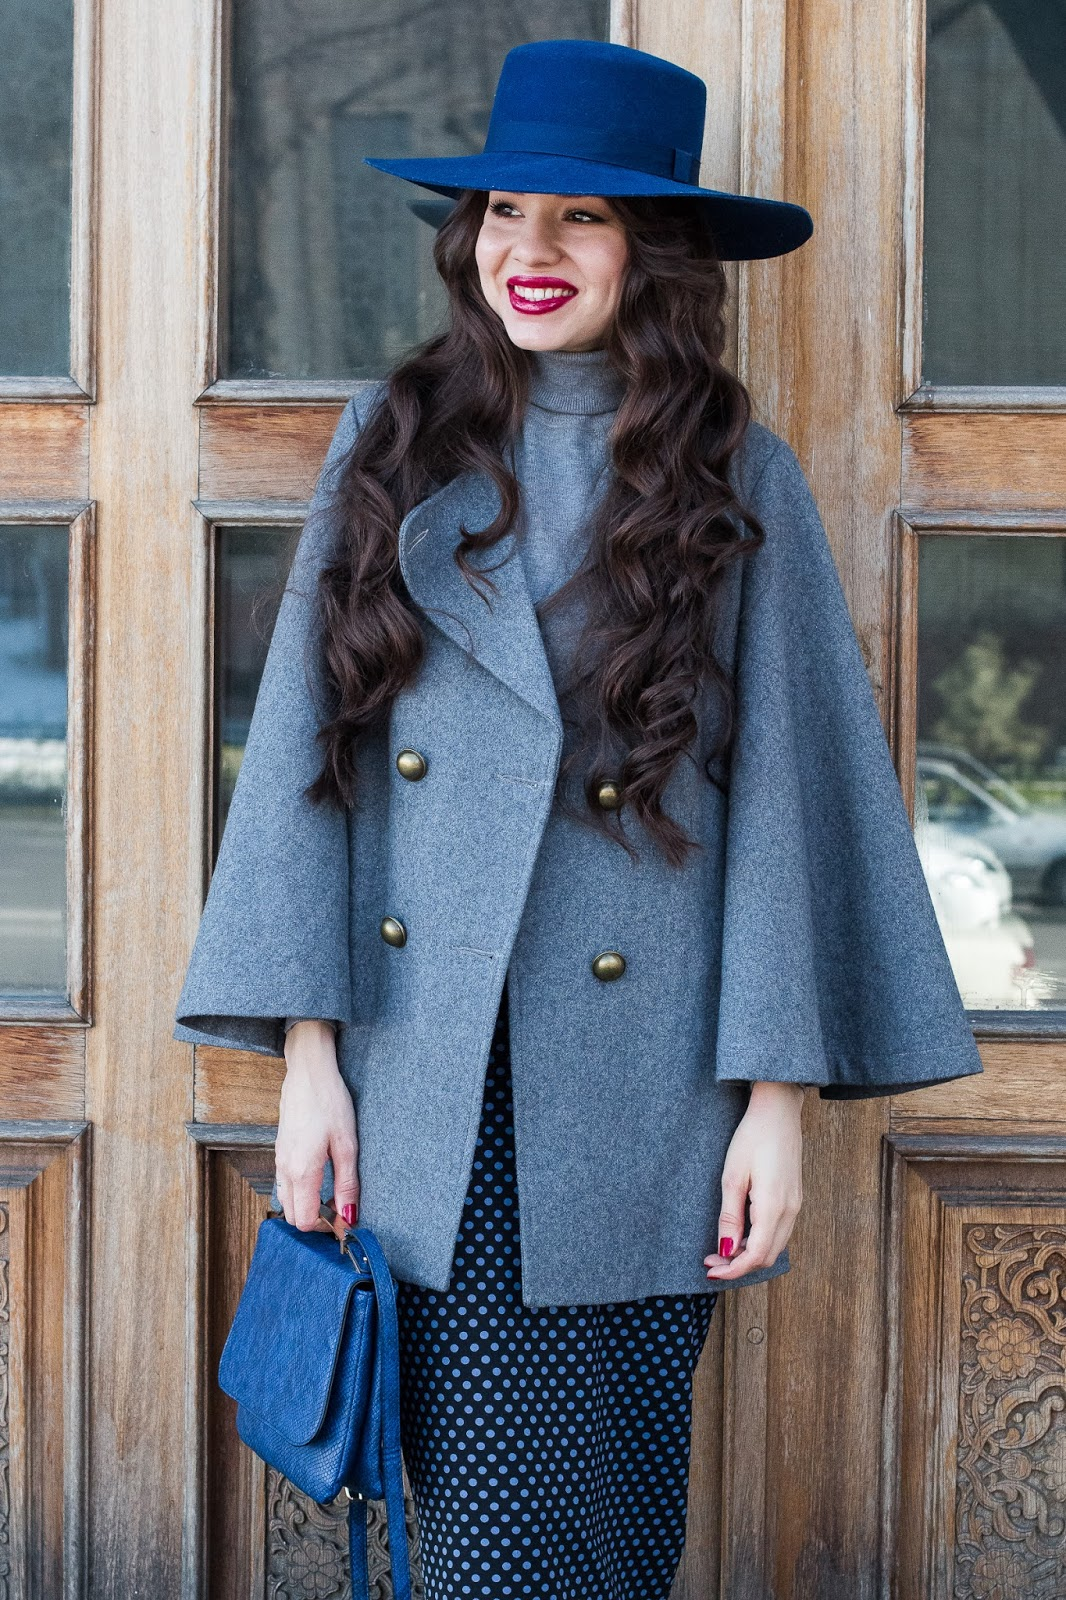 fashion blogger diyorasnotes diyora beta oversized hat asos polka dot skirt outfit of the day blue hat grey coat vipme